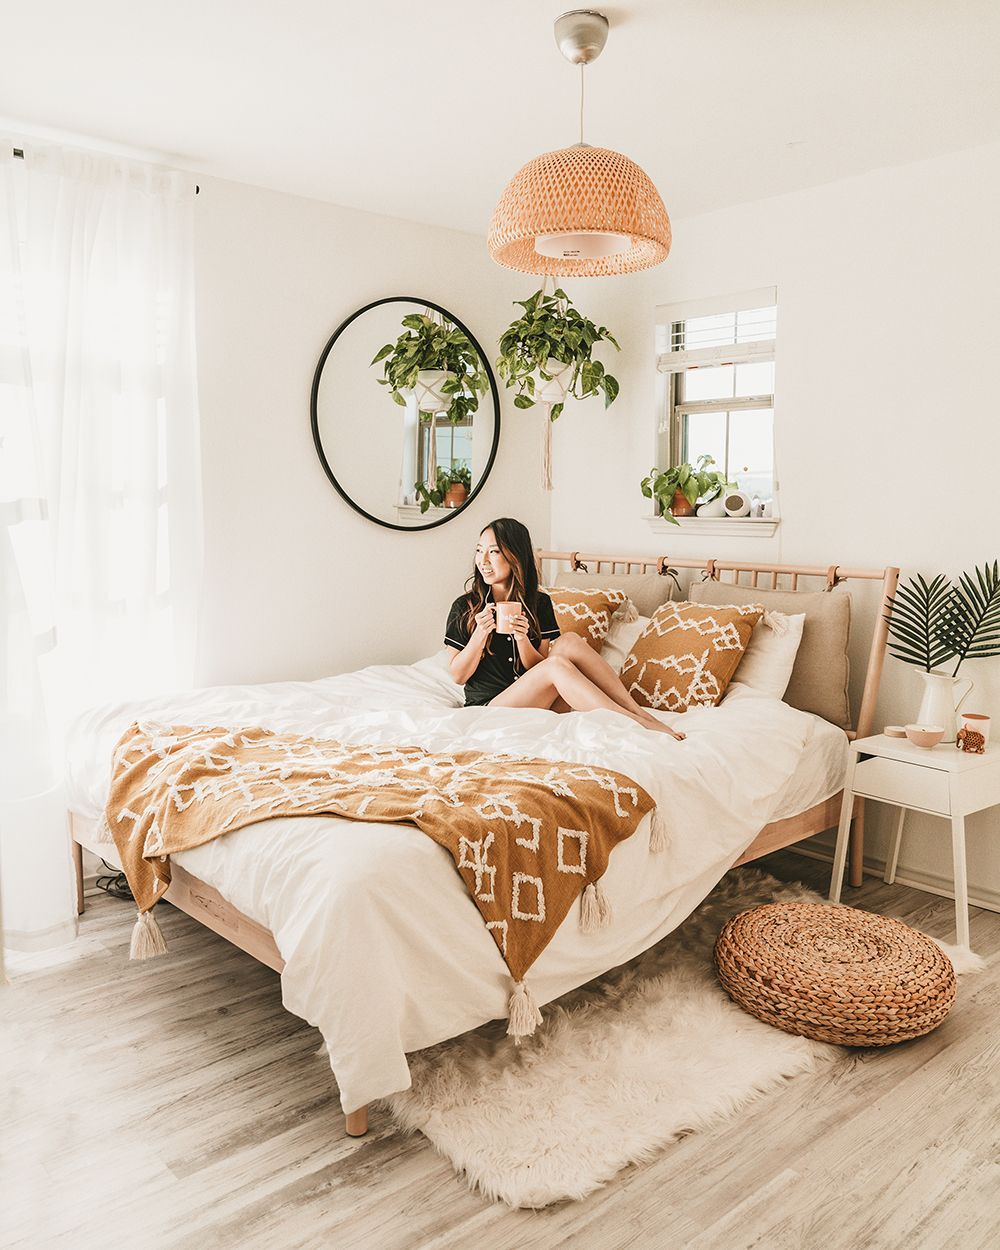 IKEA Bedroom Thanks You Visit My Boards | Interior design bedroom small, Bedroom  design, Bedroom decor